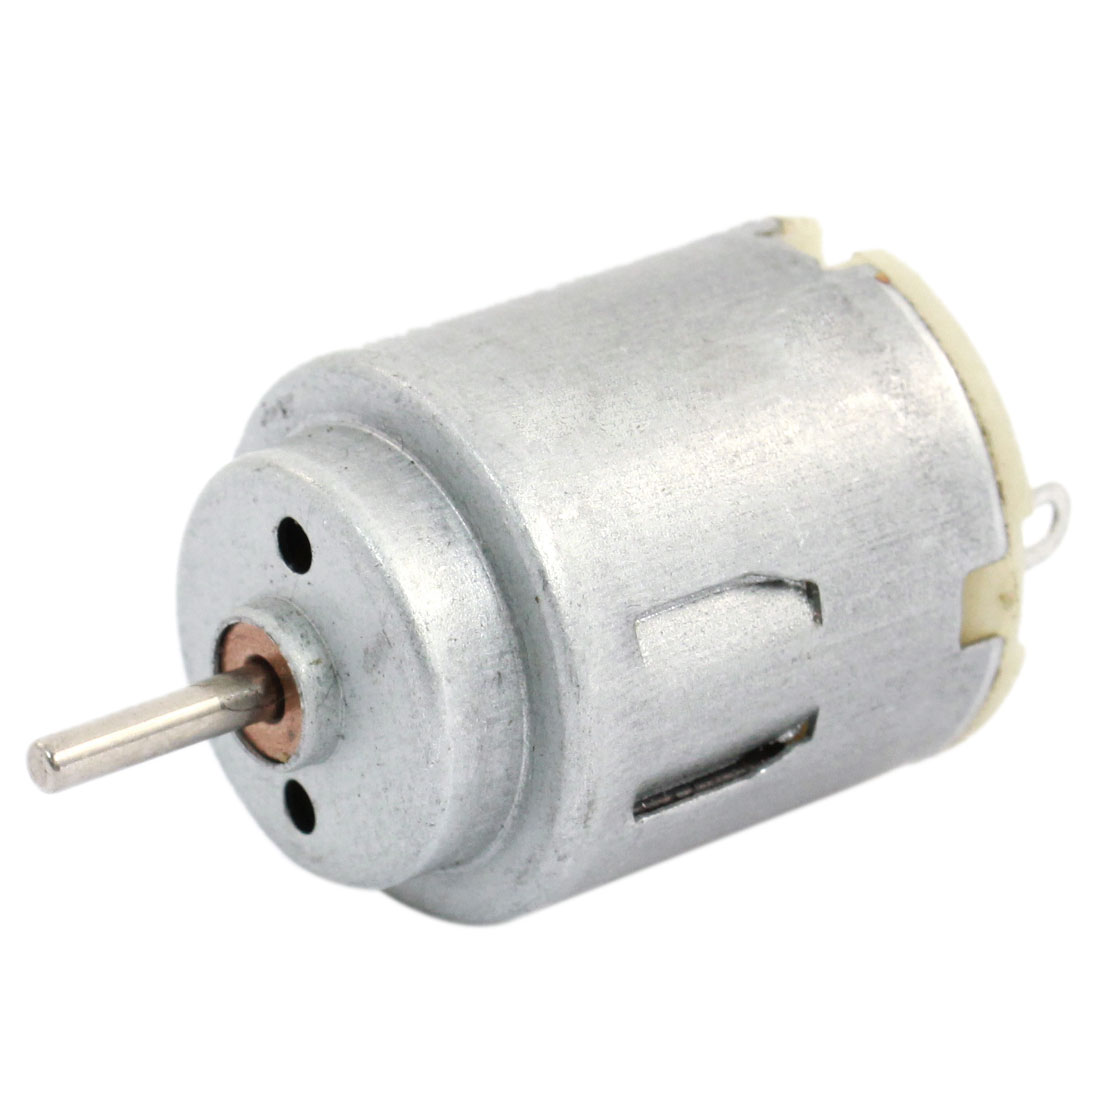 2mm Shaft 20mm Dia Cylindrical High Torque Magnetic Electric Mini Motor 28000RPM DC 3-4.5V